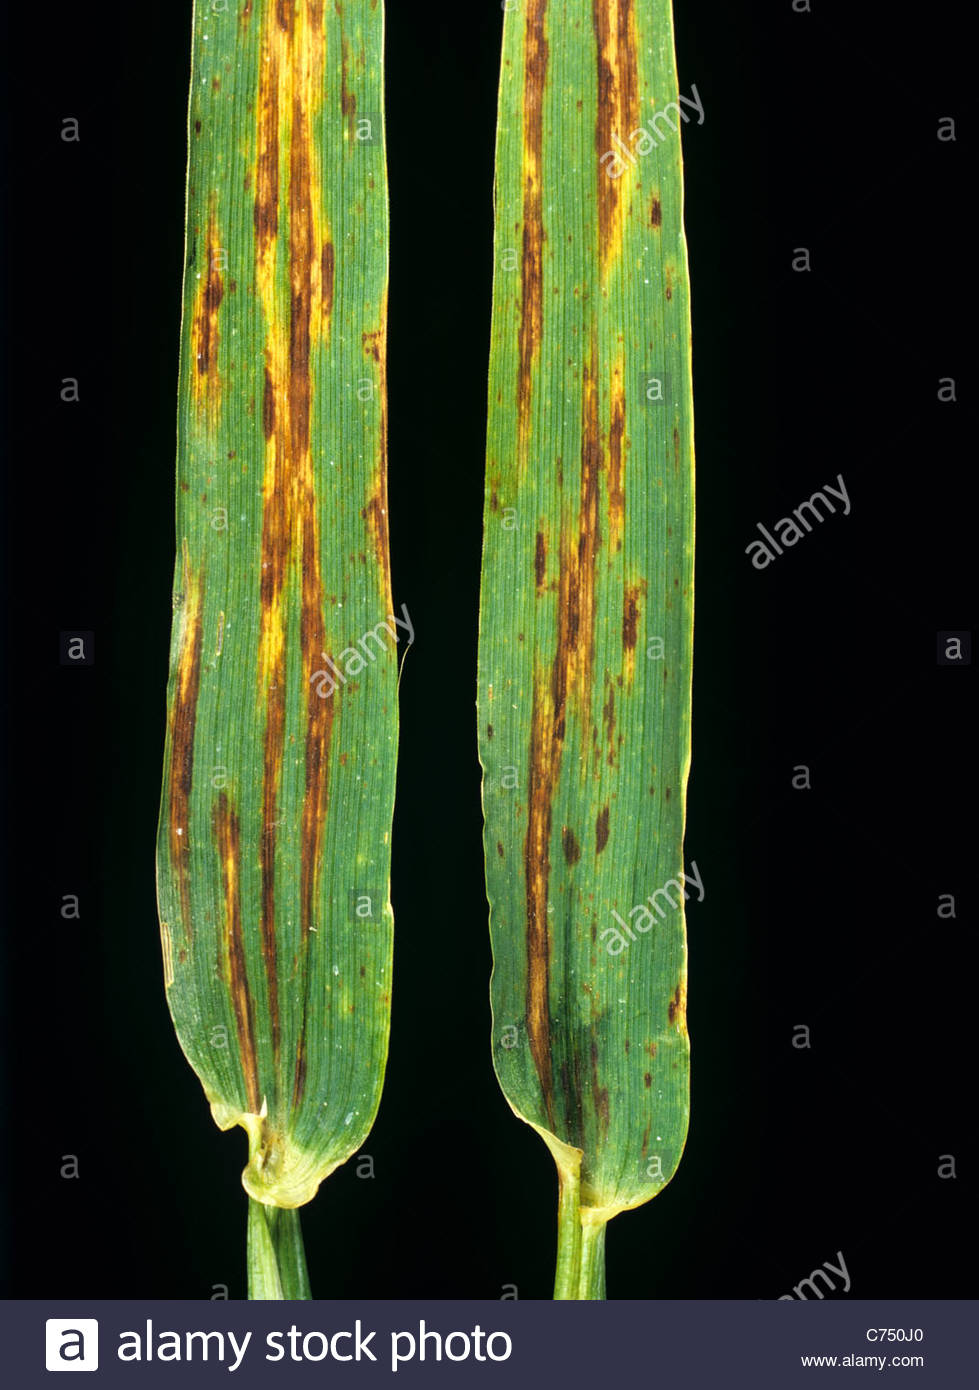 Net blotch (Pyrenophora teres) lesions on barley leaves from a mature crop - Stock Image